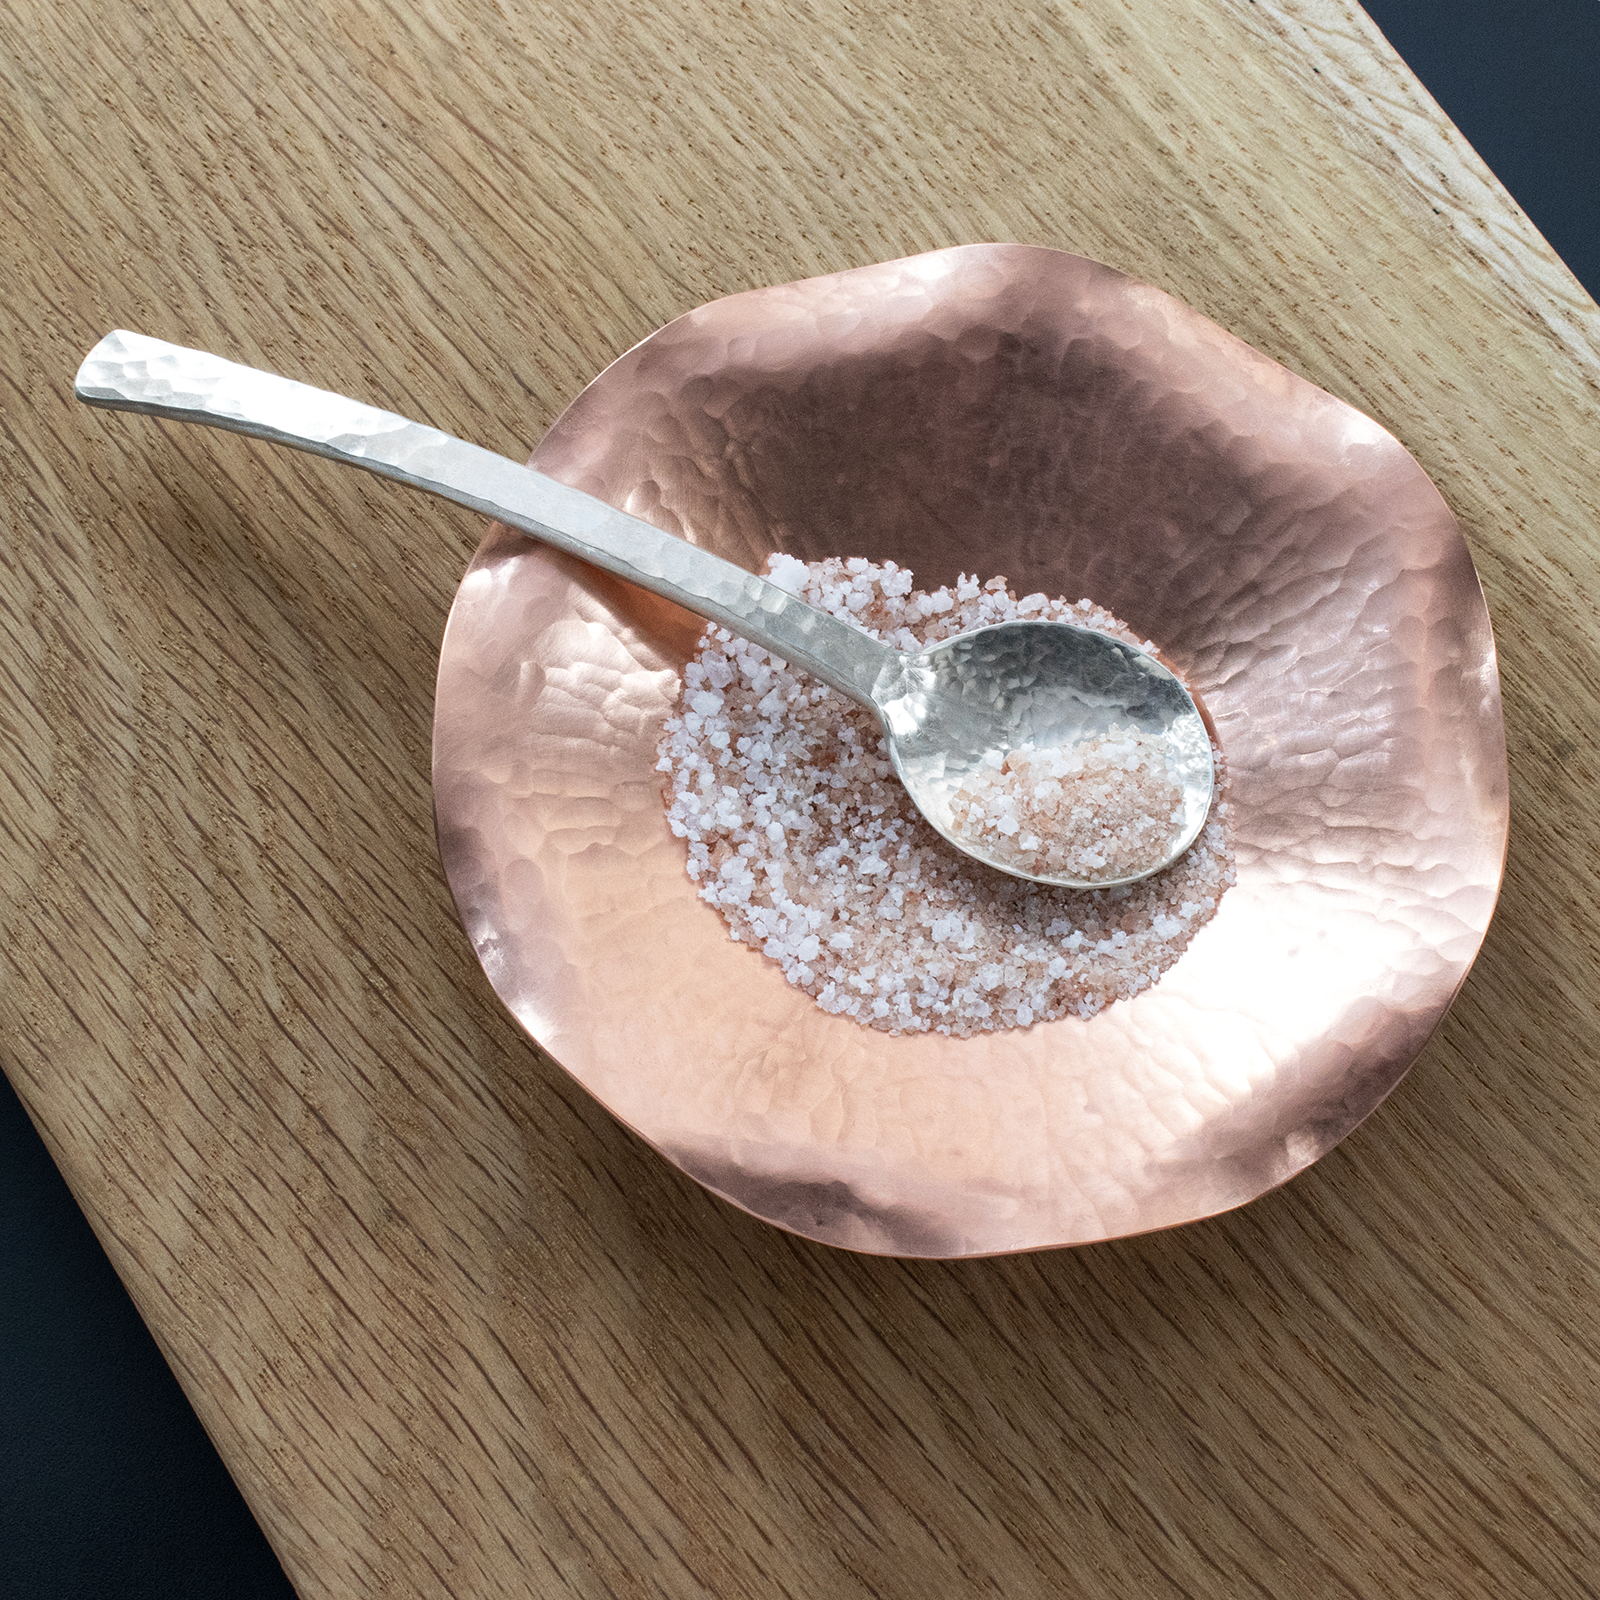 SS Sugar Spoon in copper salt dish